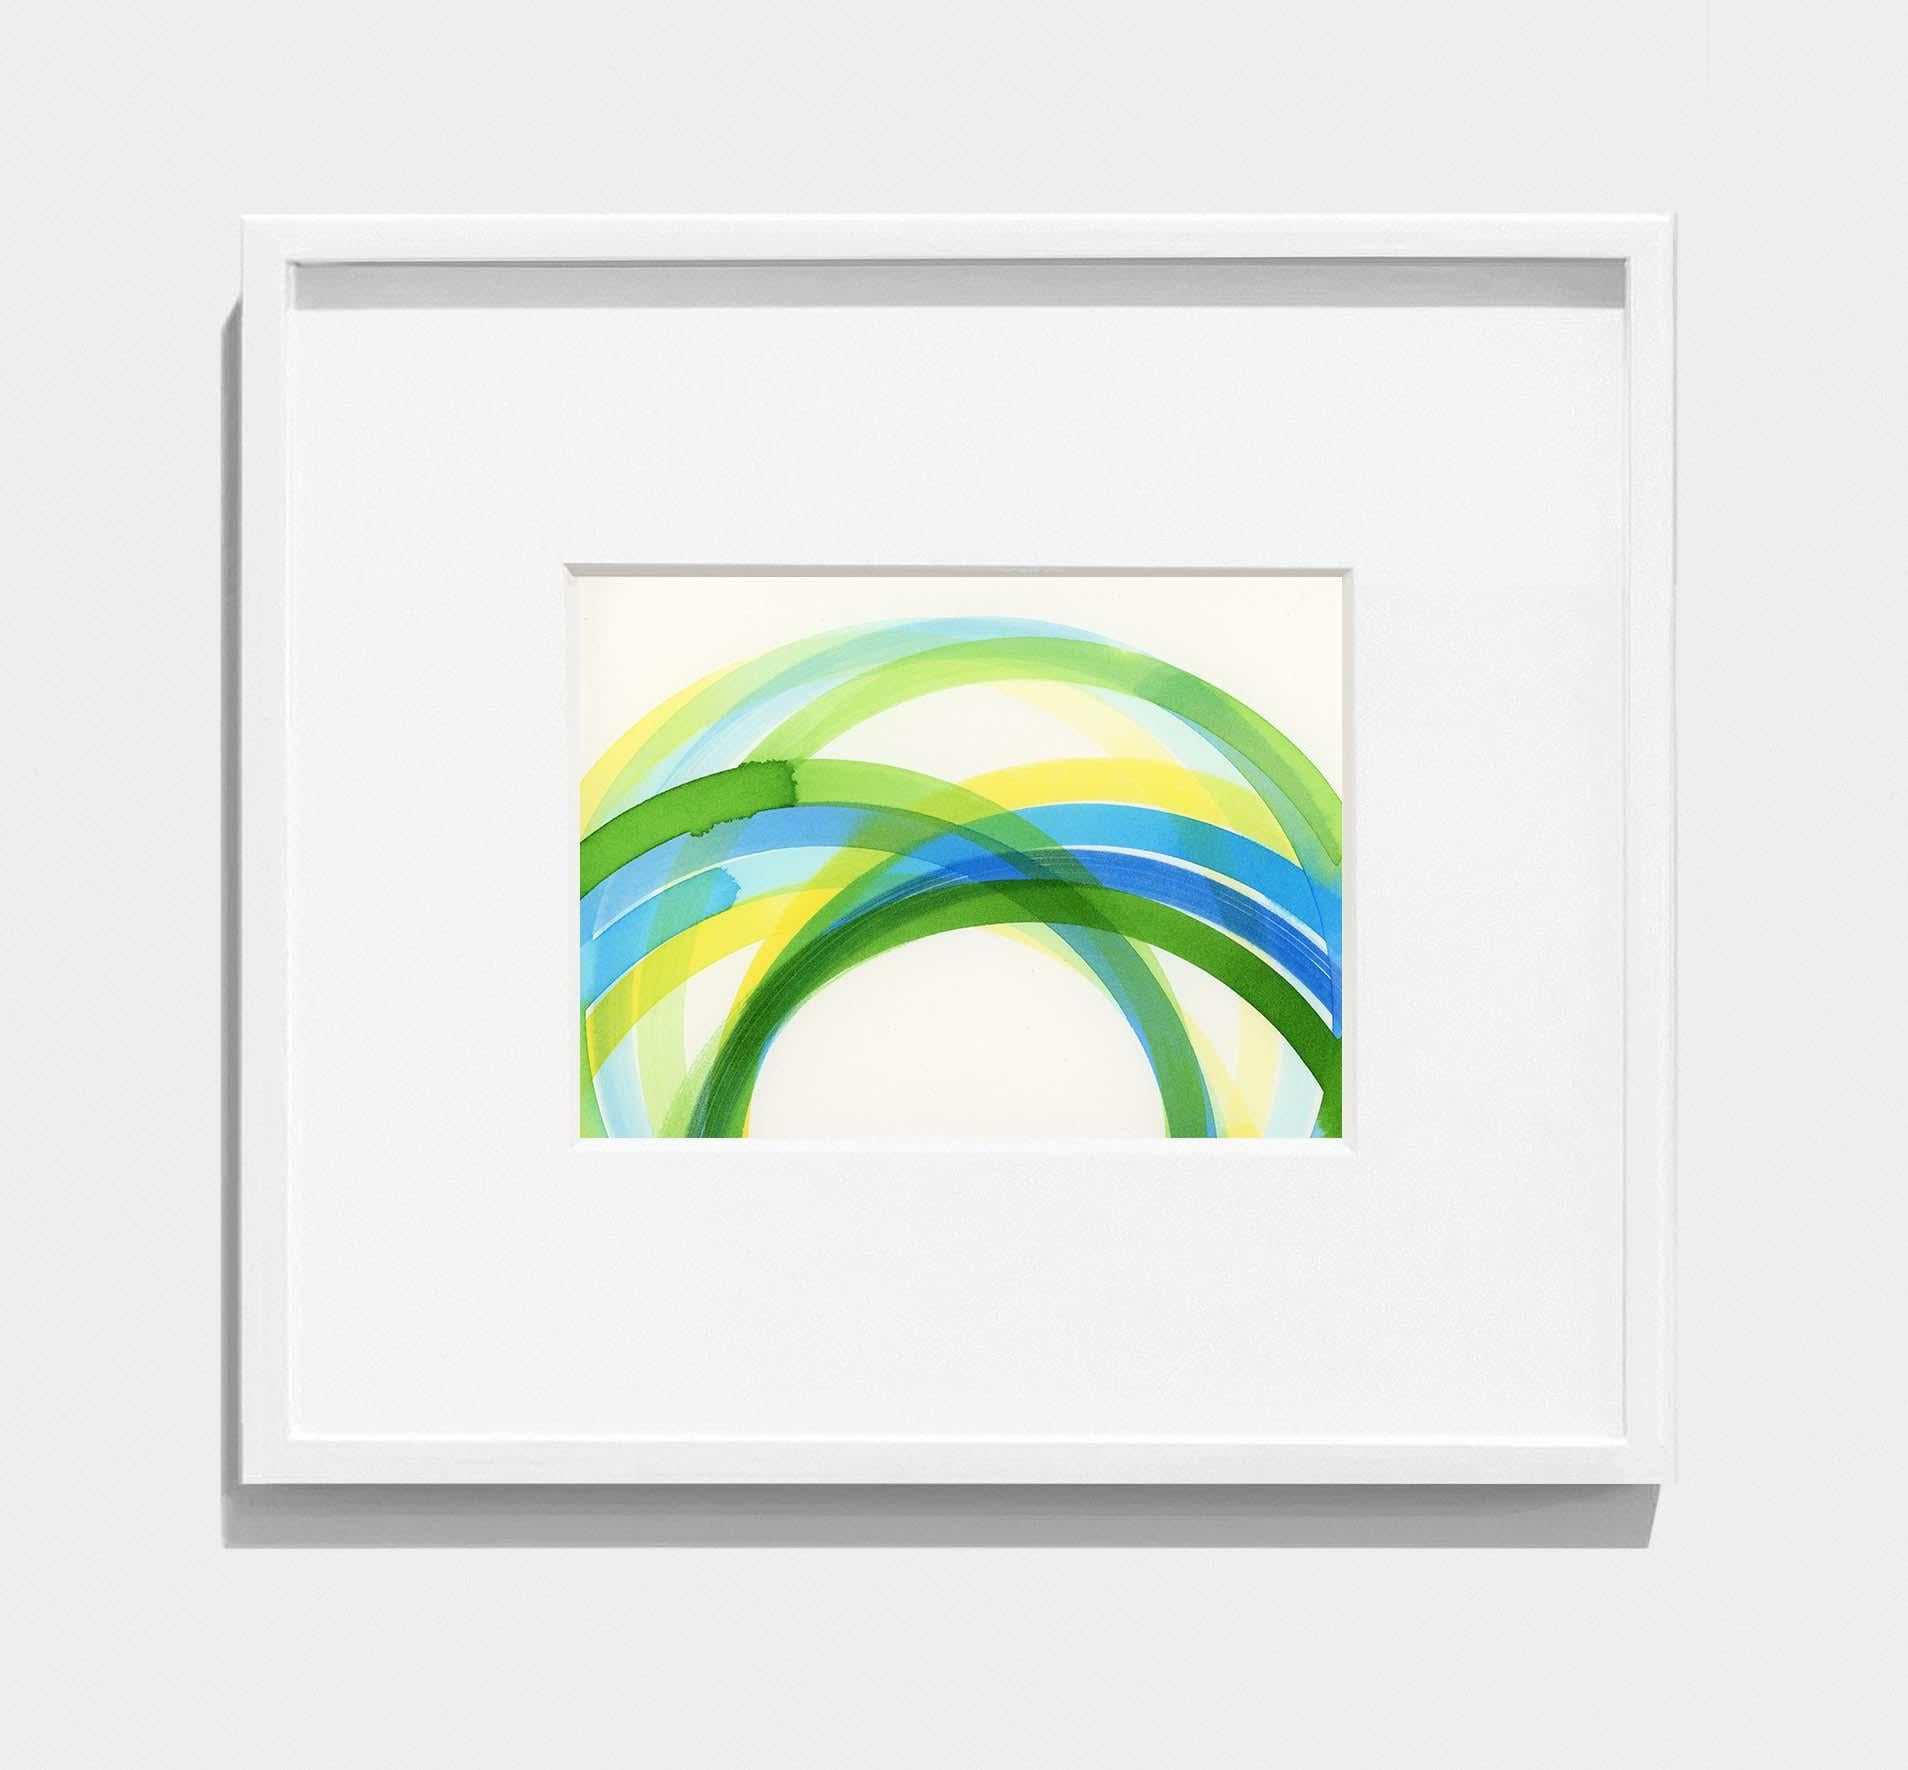 framed abstract painting of interlocking yellow, green, blue circles